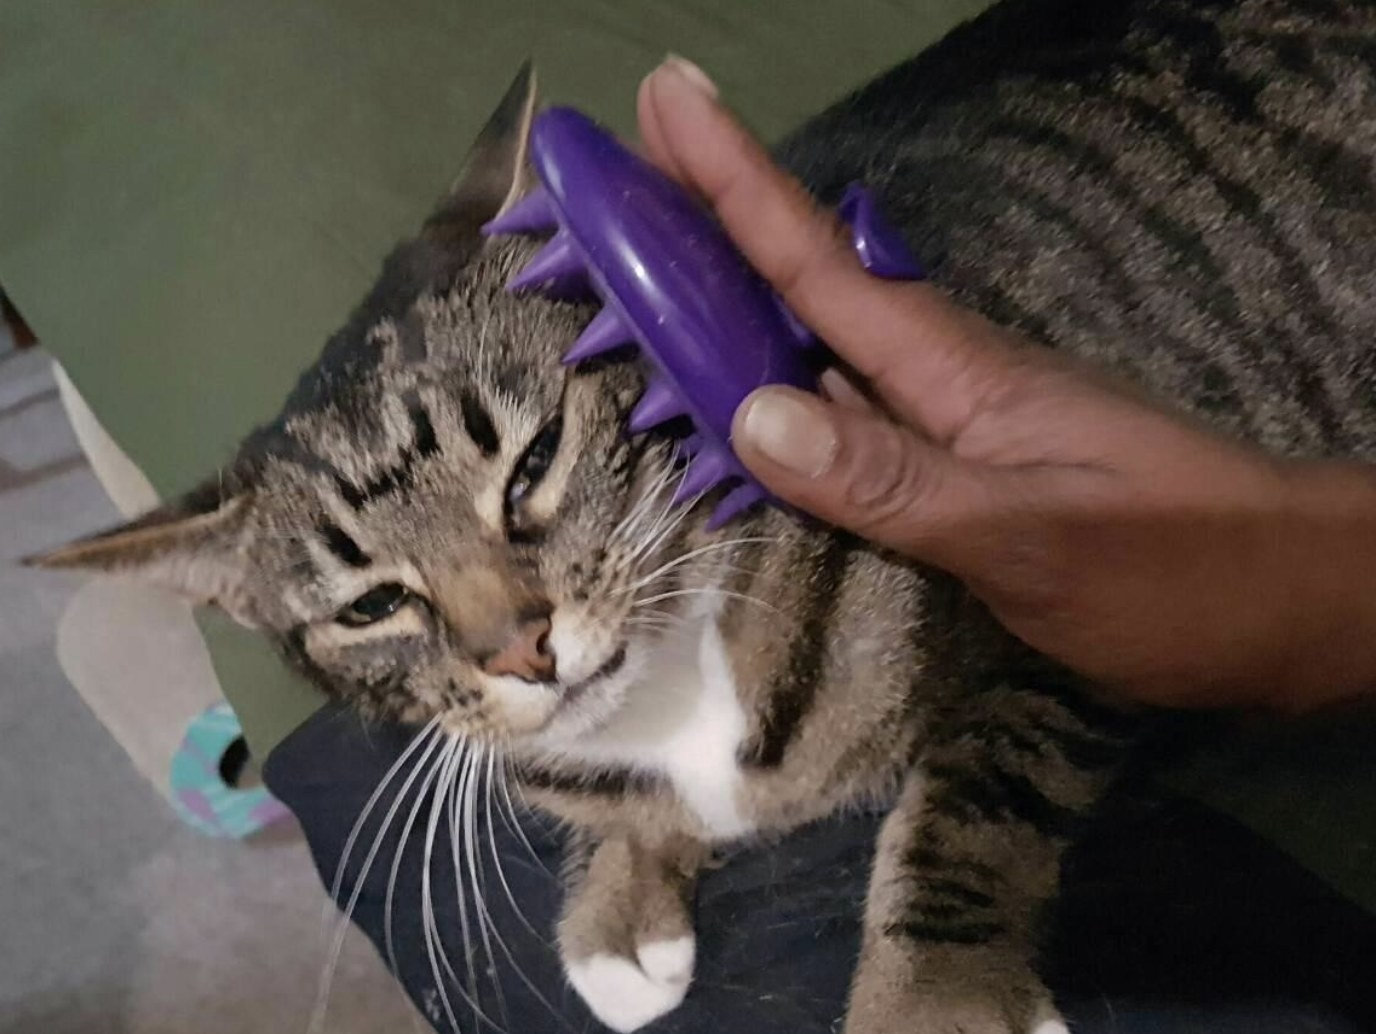 a striped cat being brushed with a purple silicone brush that fits in the palm of a hand